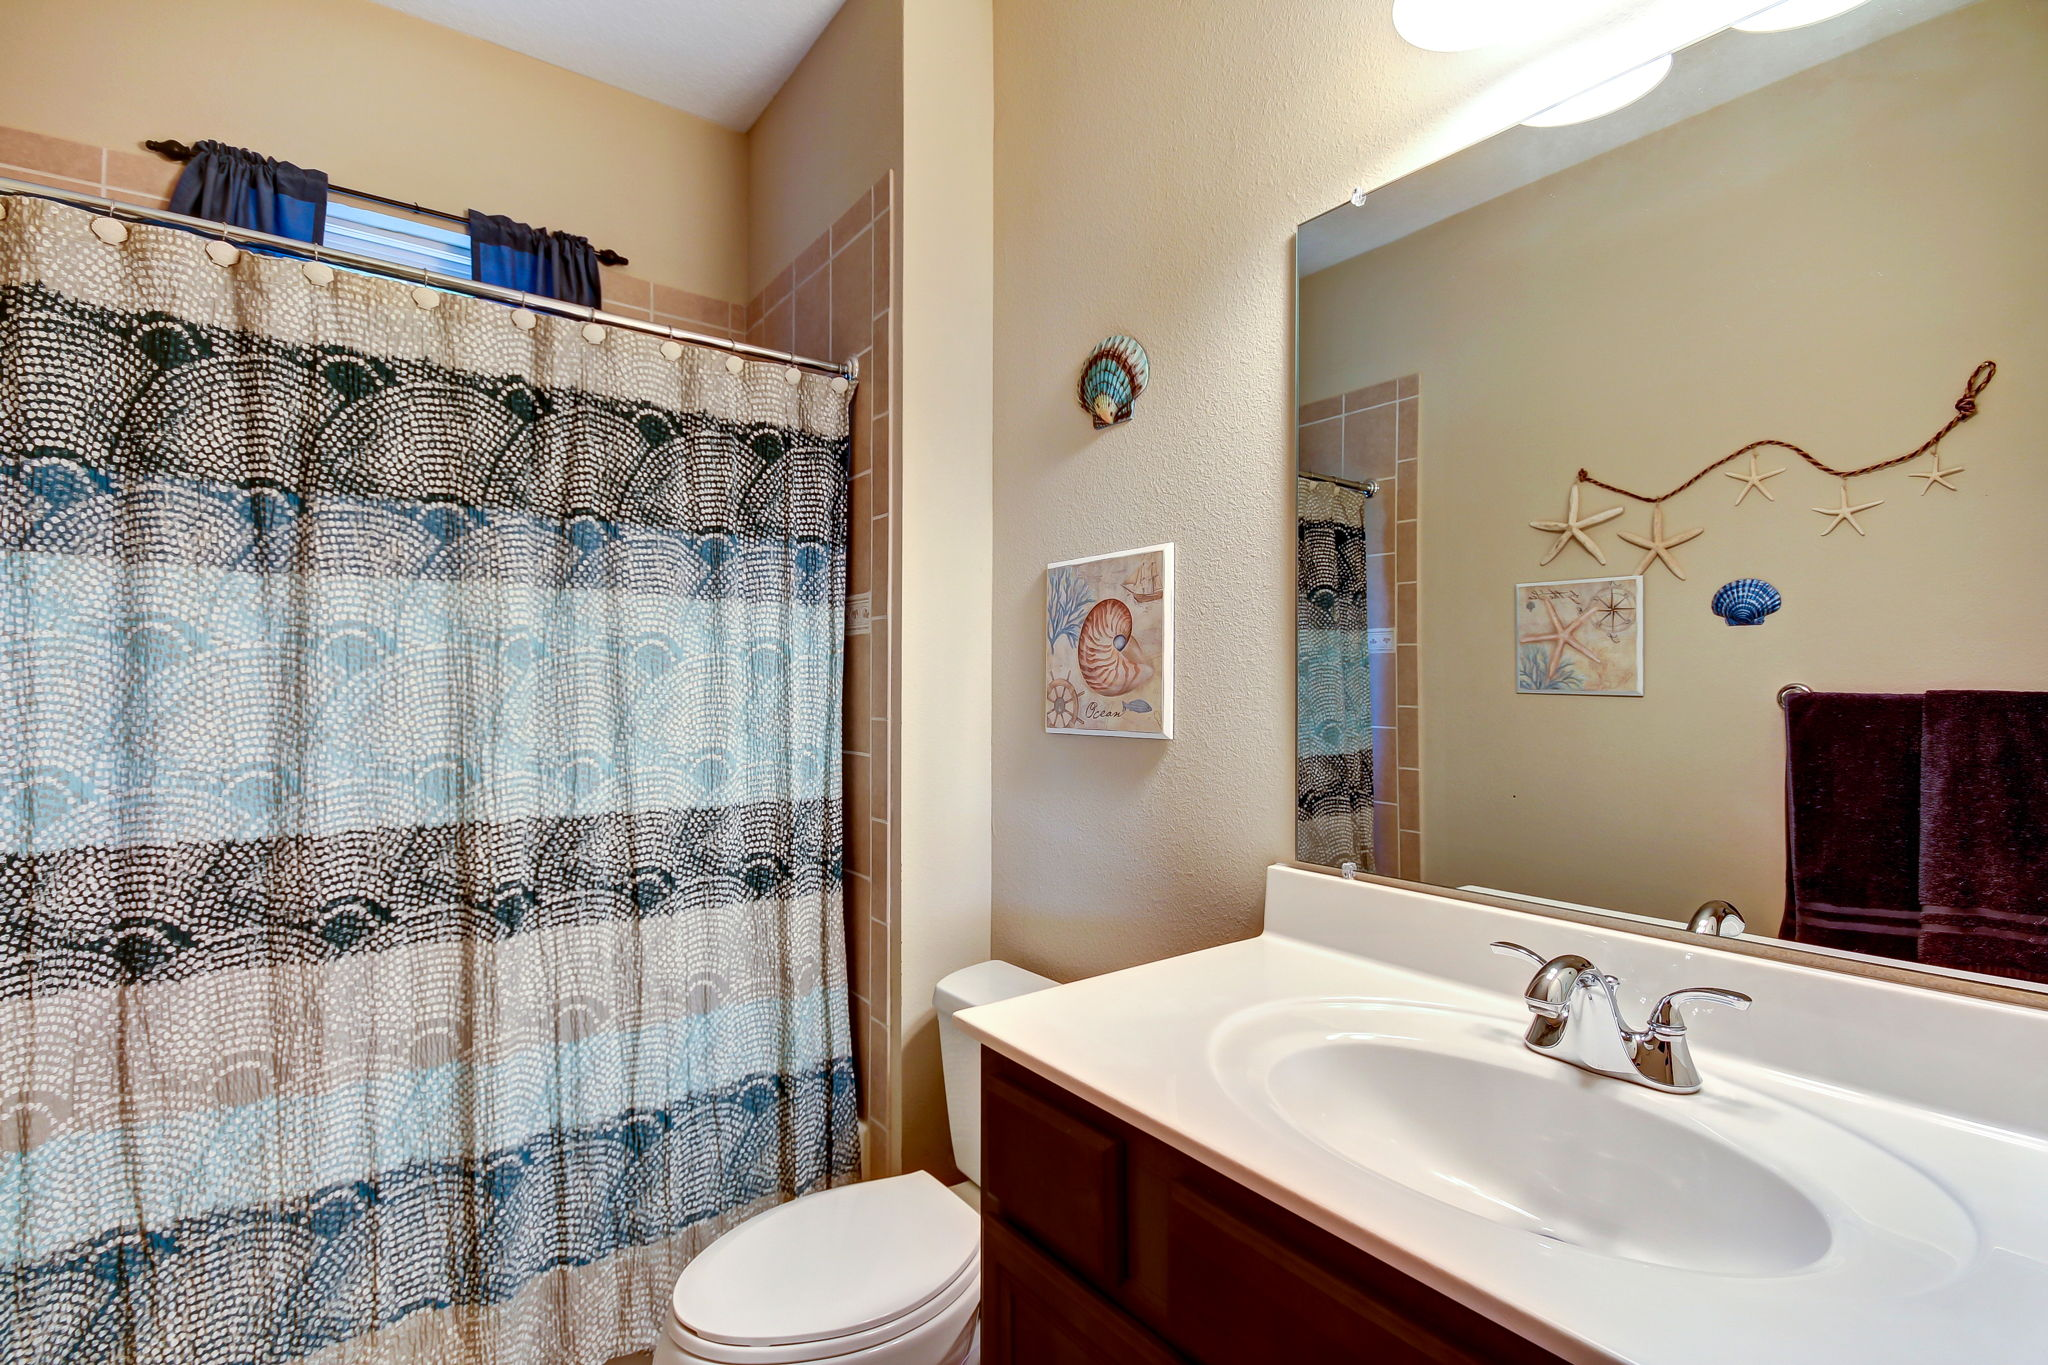 A third guest bath: a luxury not found in most townhomes or condos